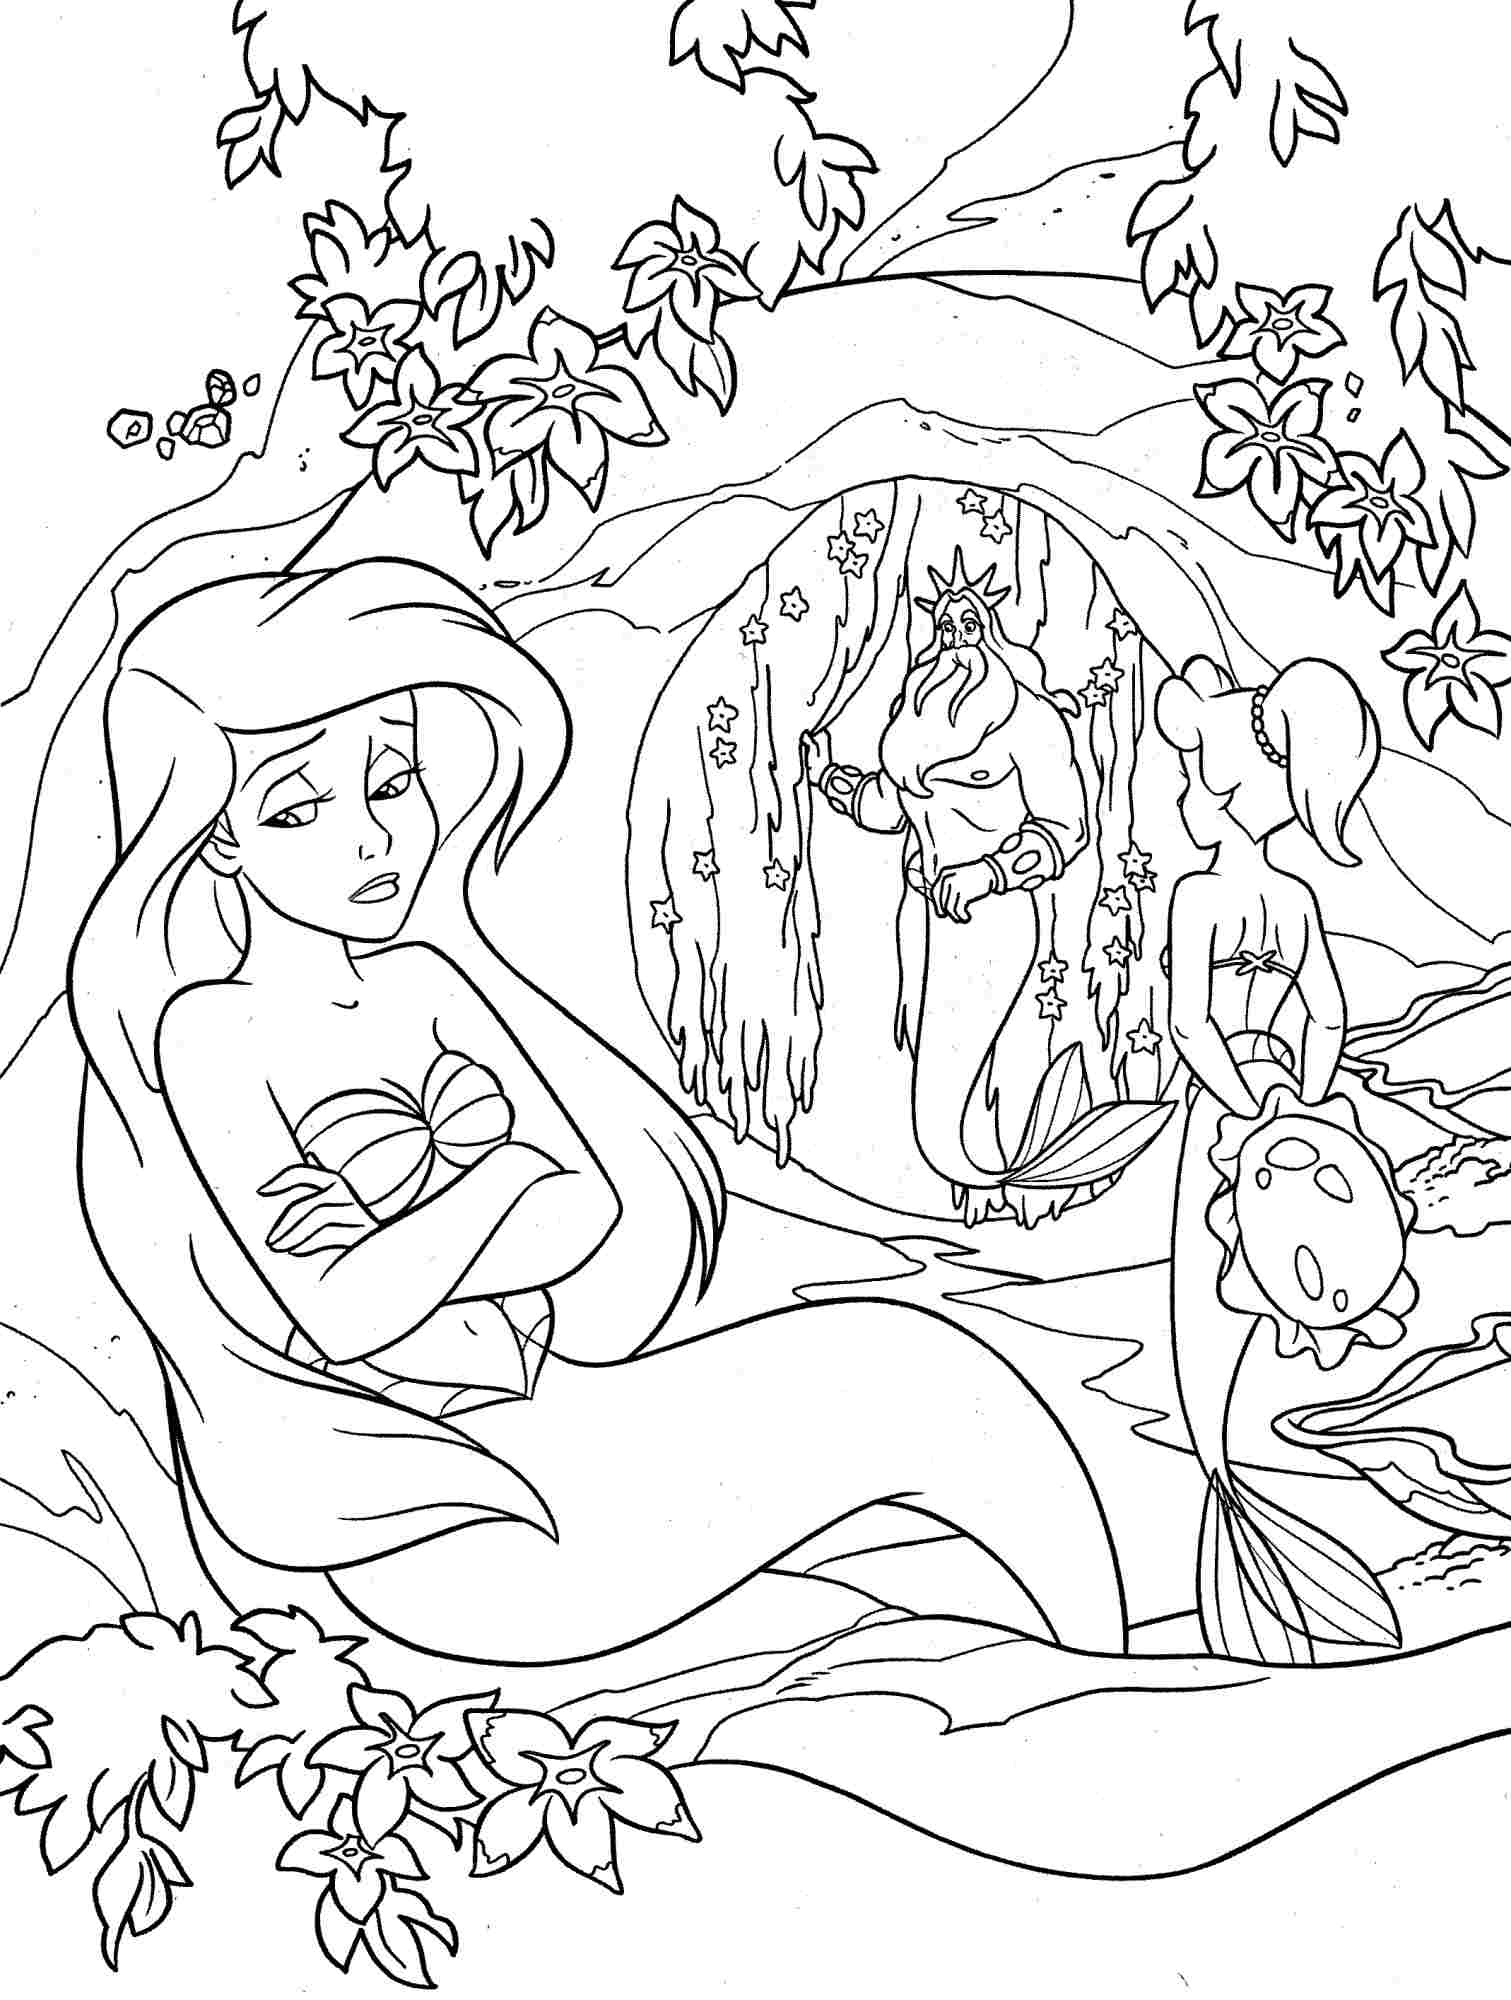 Coloring Pages Of Little Mermaid Free Little Mermaid Coloring Pages At Getdrawings Free For